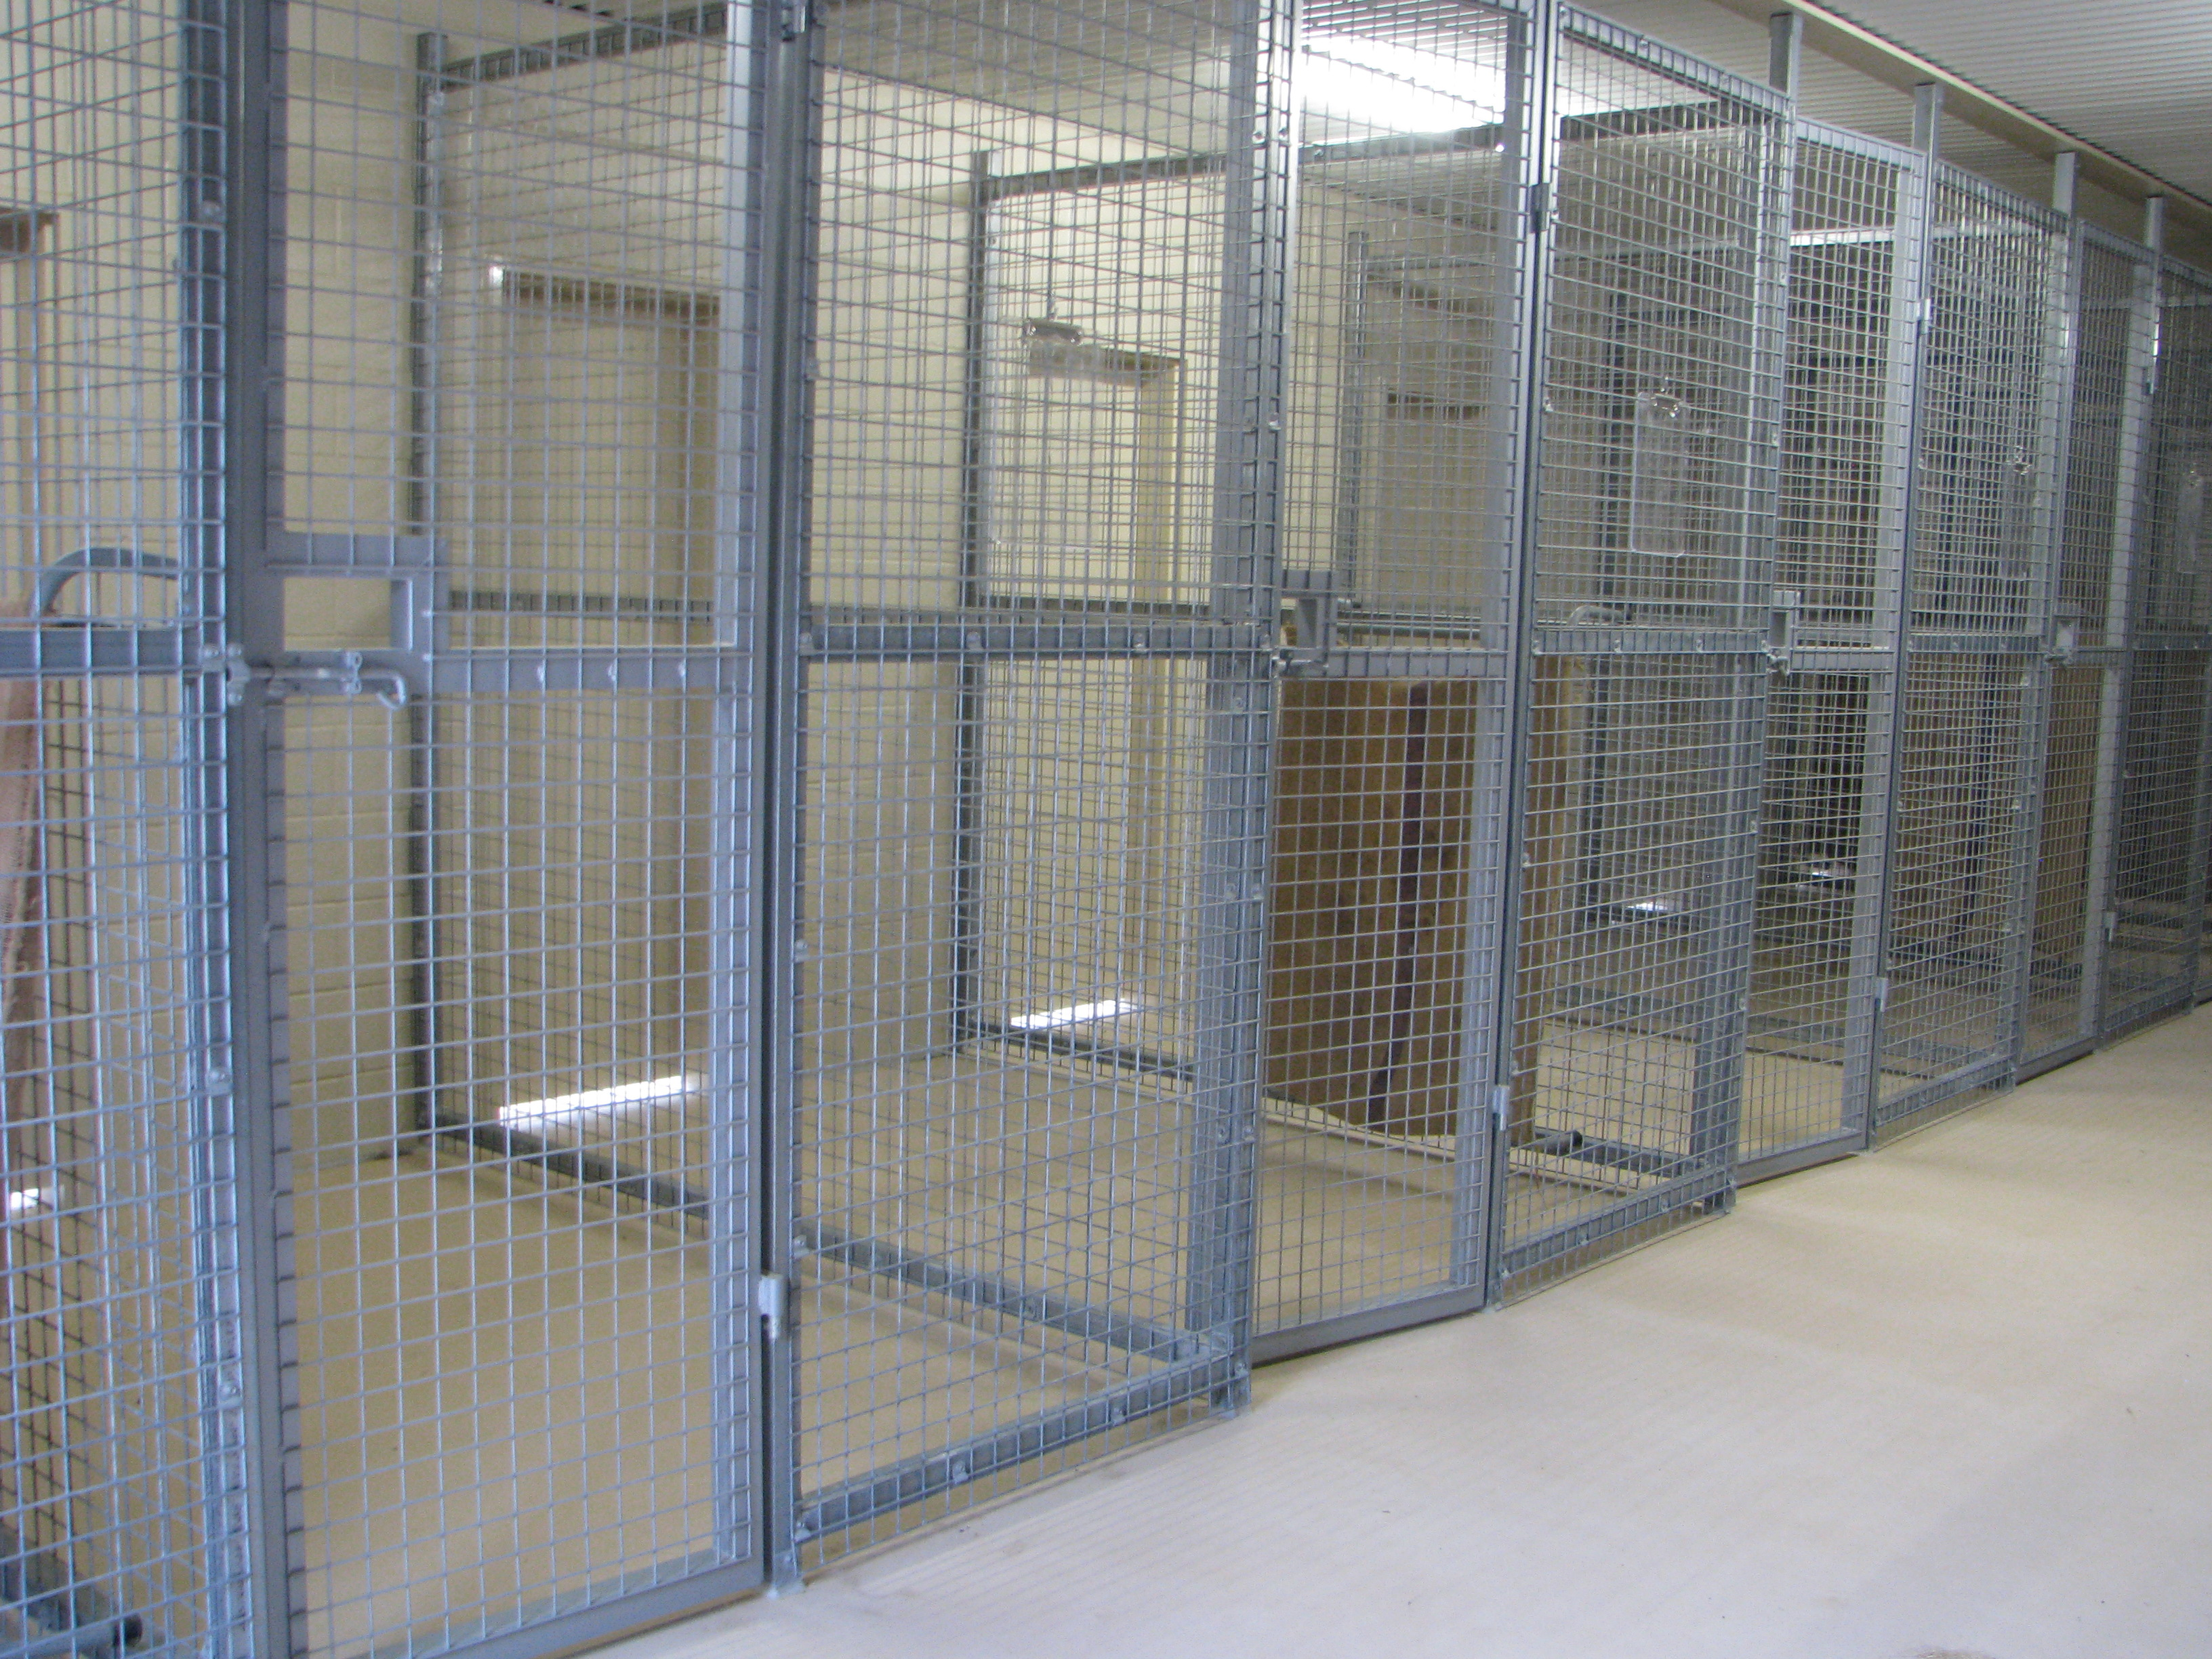 The internal kennels where our guests sleep are extremely large